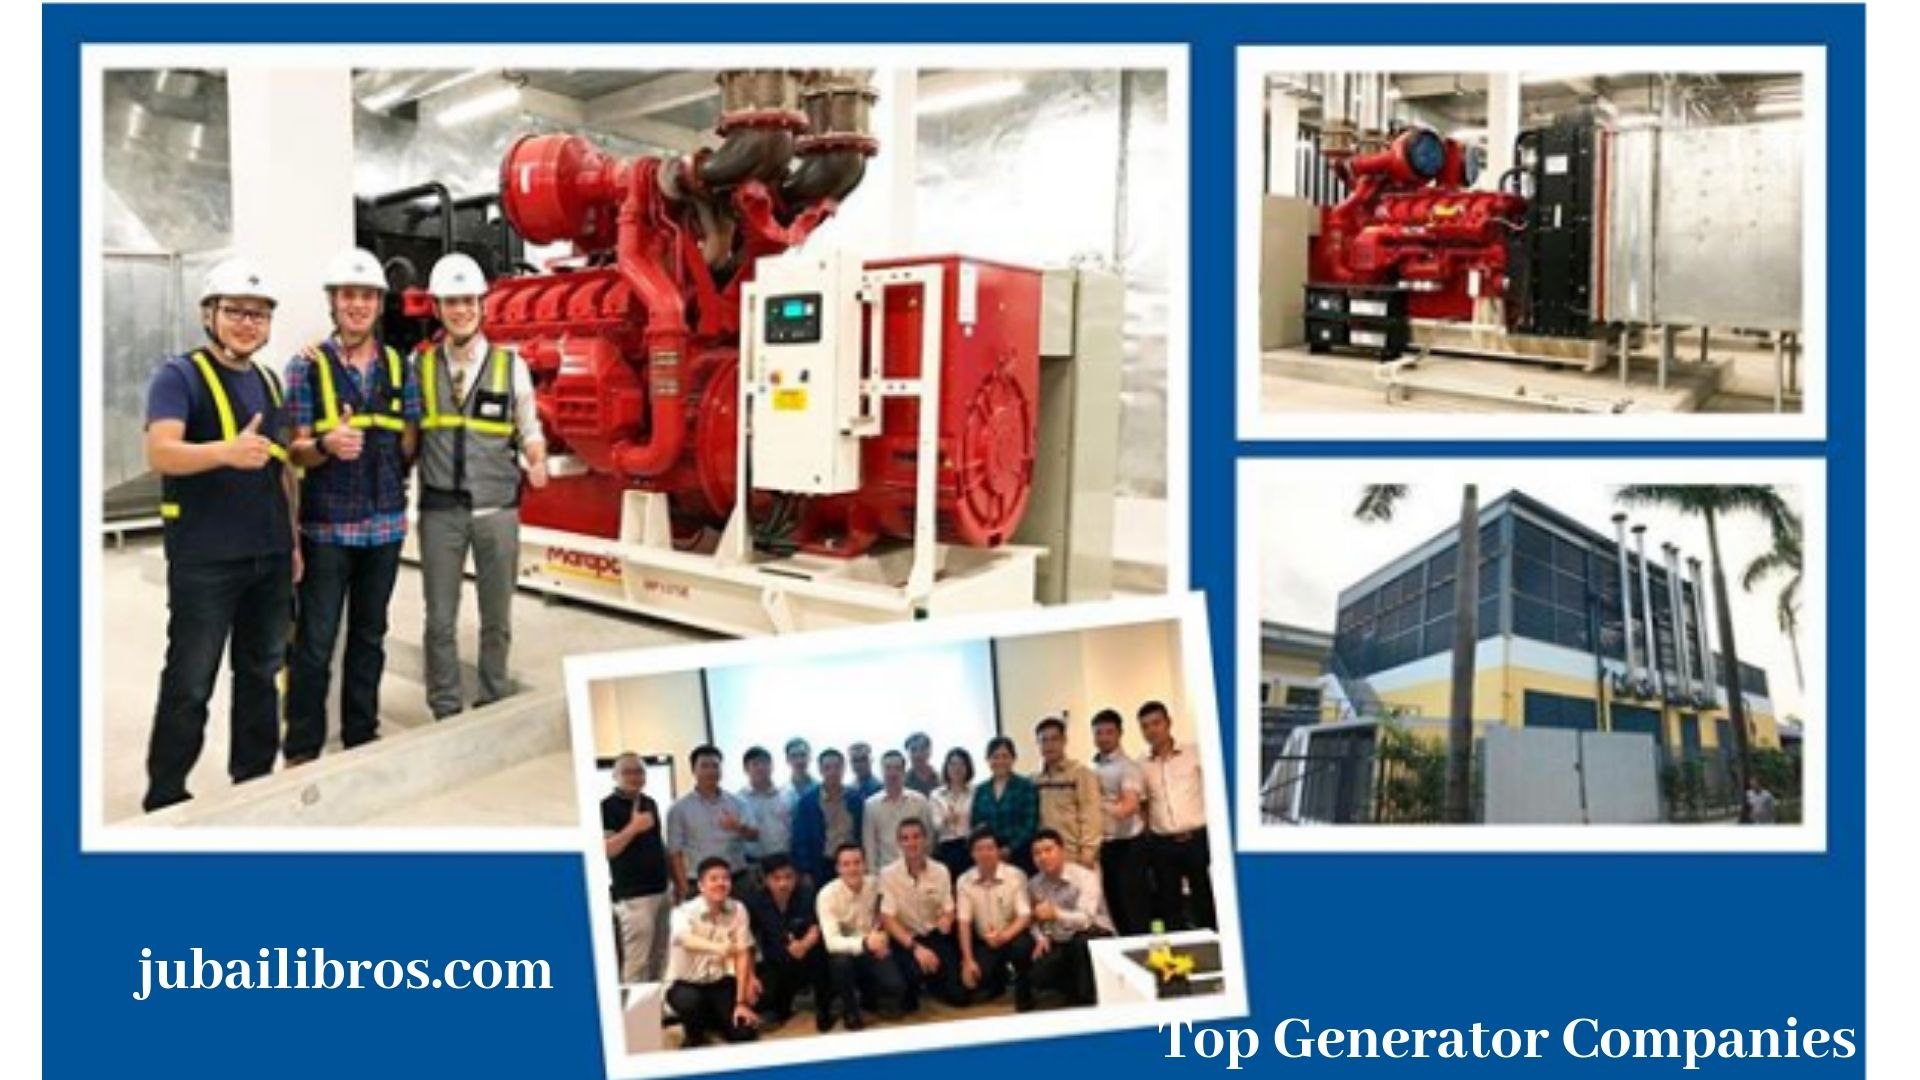 Jubaili Bross is one of the top generator company in UAE who